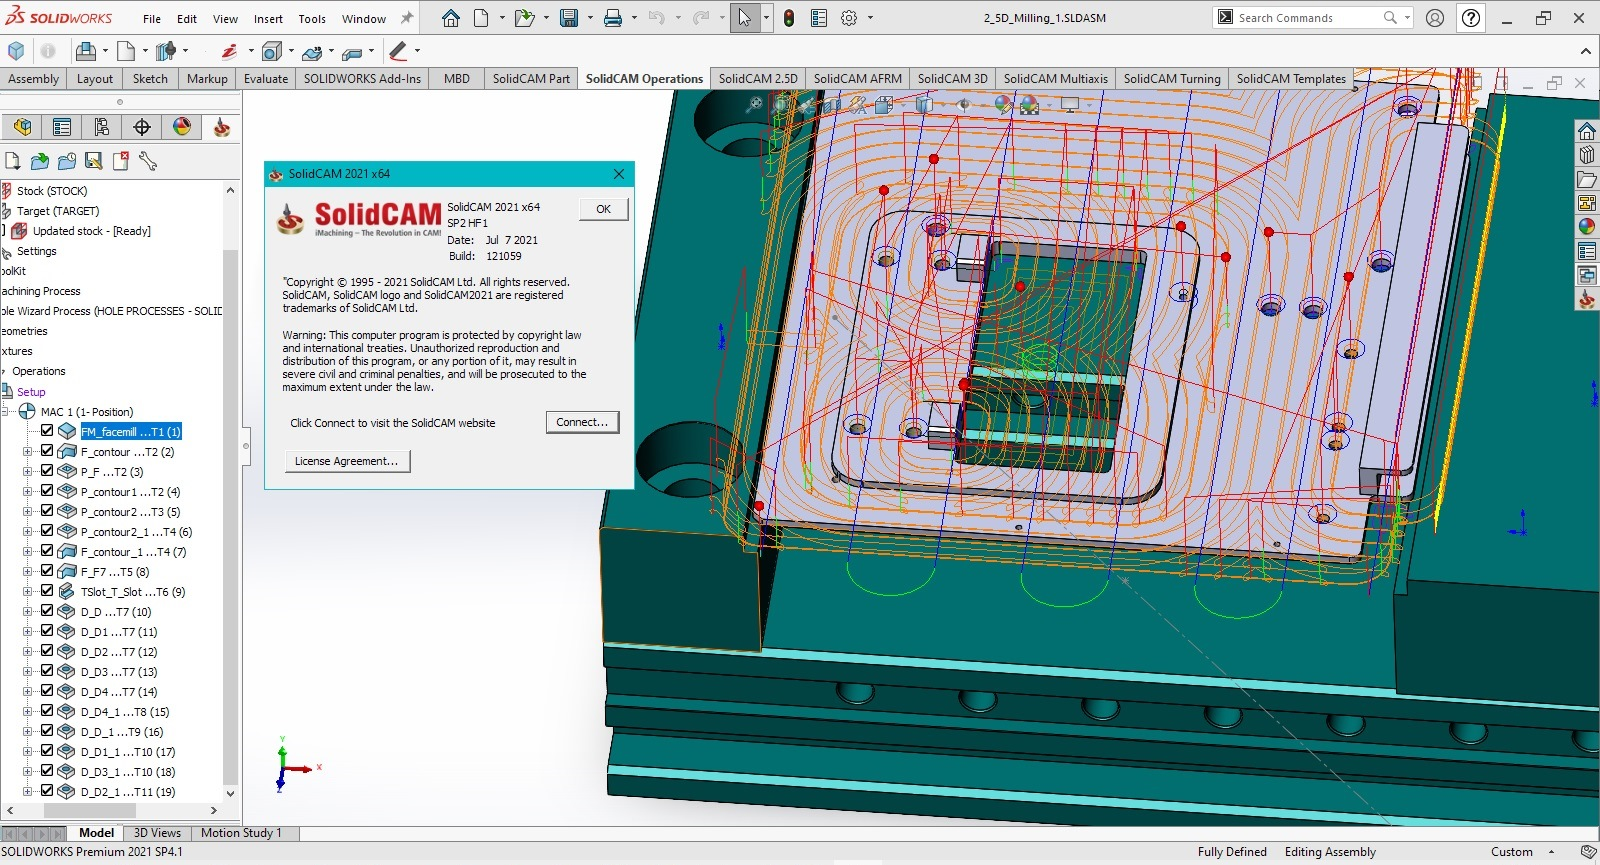 Working with SolidCAM 2021 SP2 HF1 Multilang for SolidWorks 2012-2021 x64 full